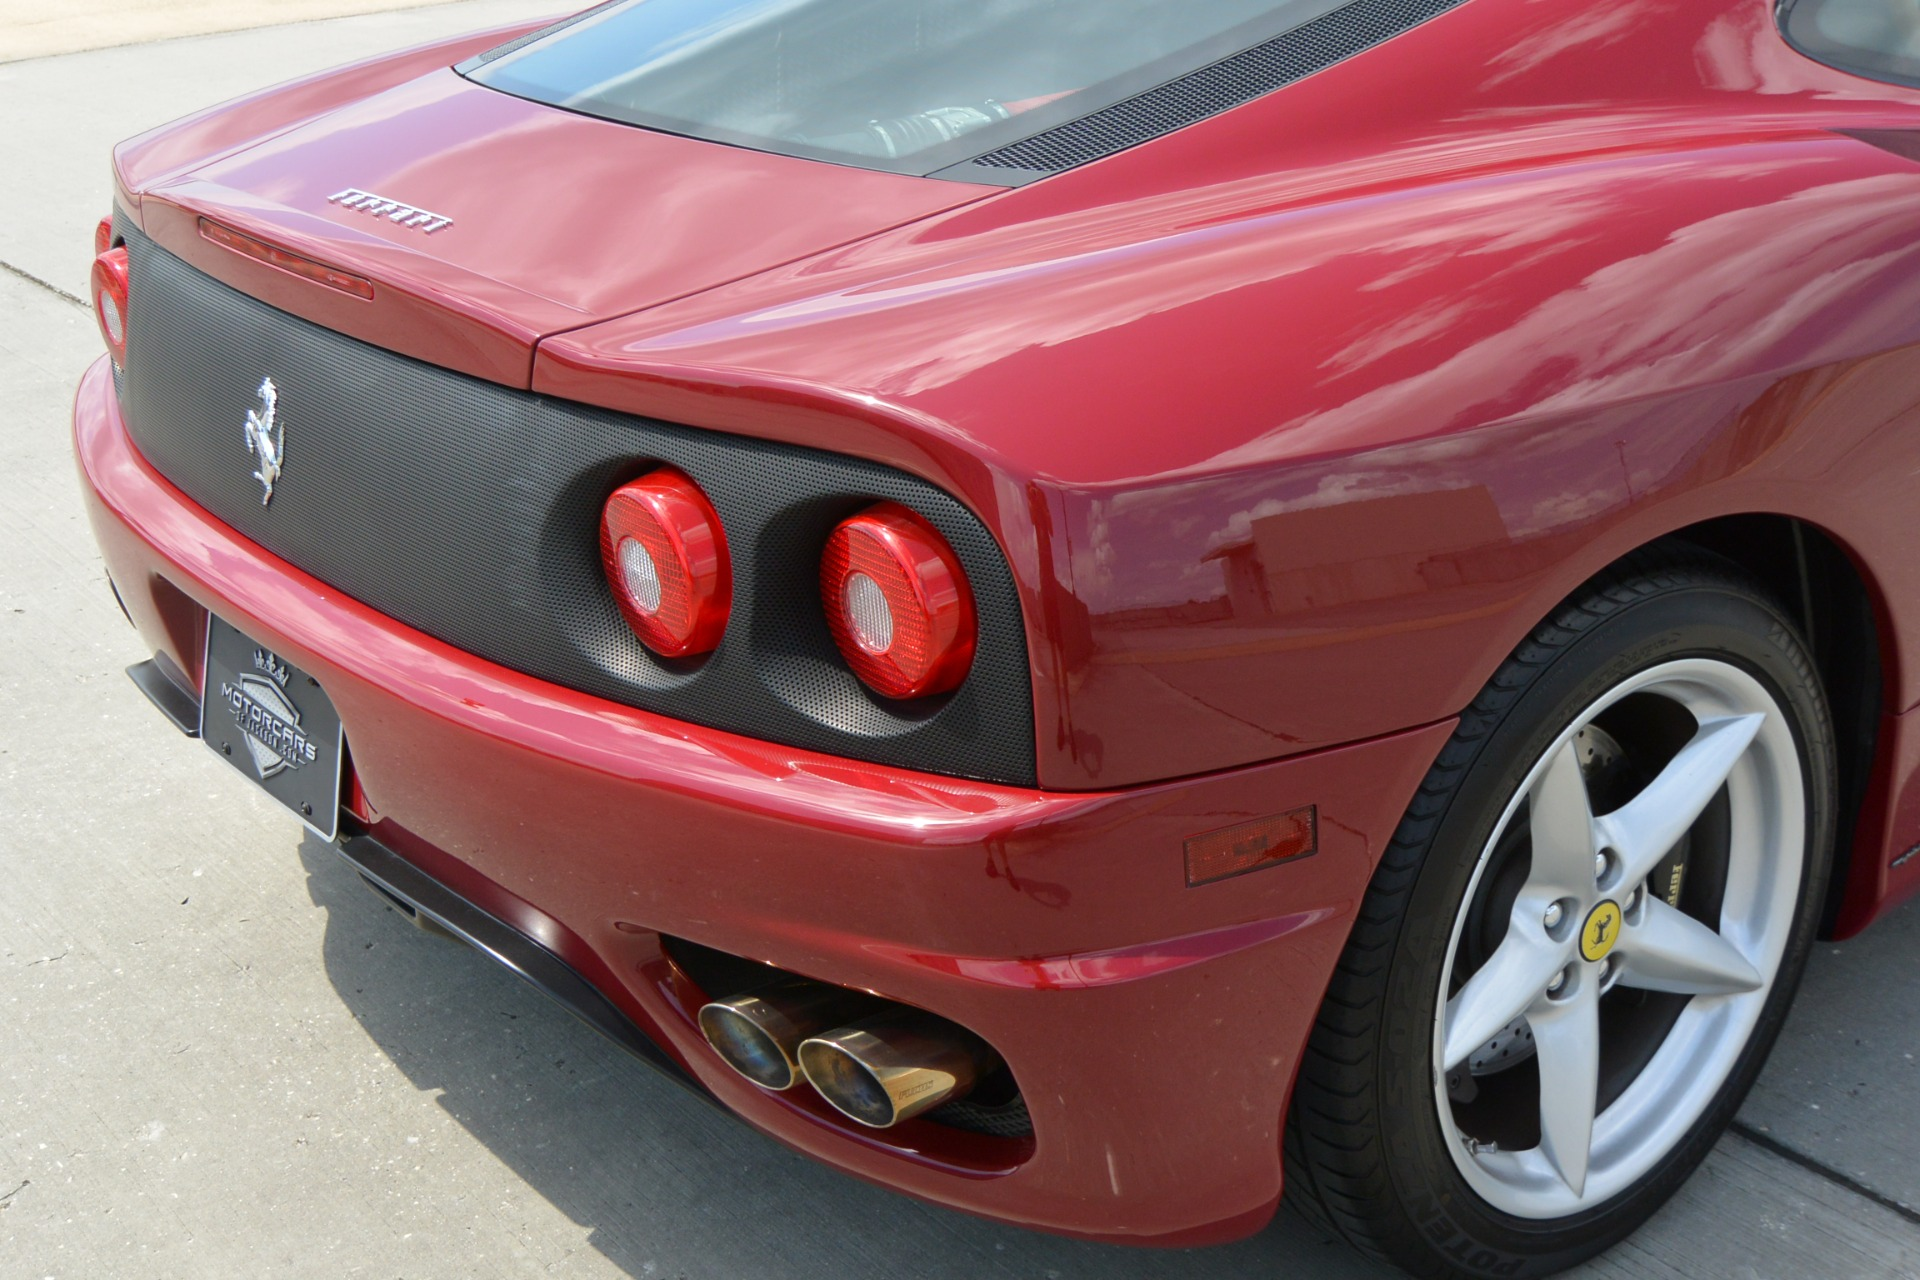 Used Car Dealerships In Jackson Ms >> Used Car Dealerships In Jackson Ms New Car Price 2020